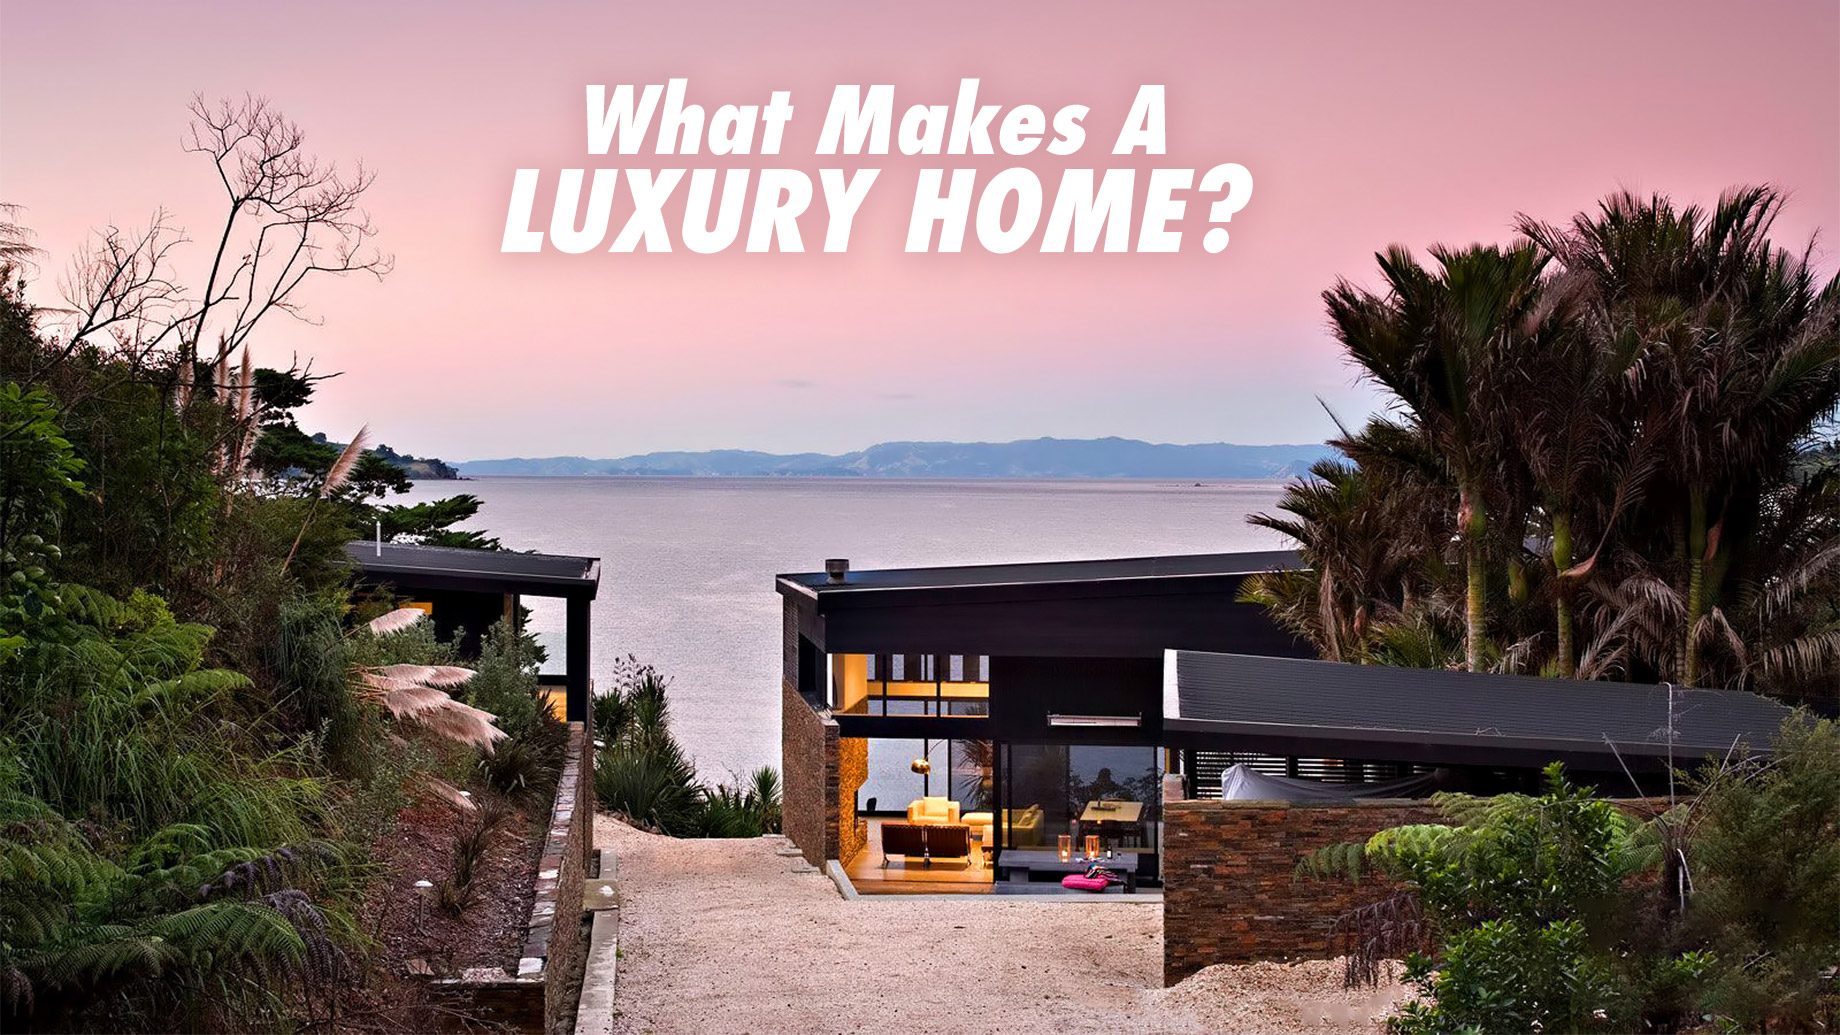 What Makes a Luxury Home?